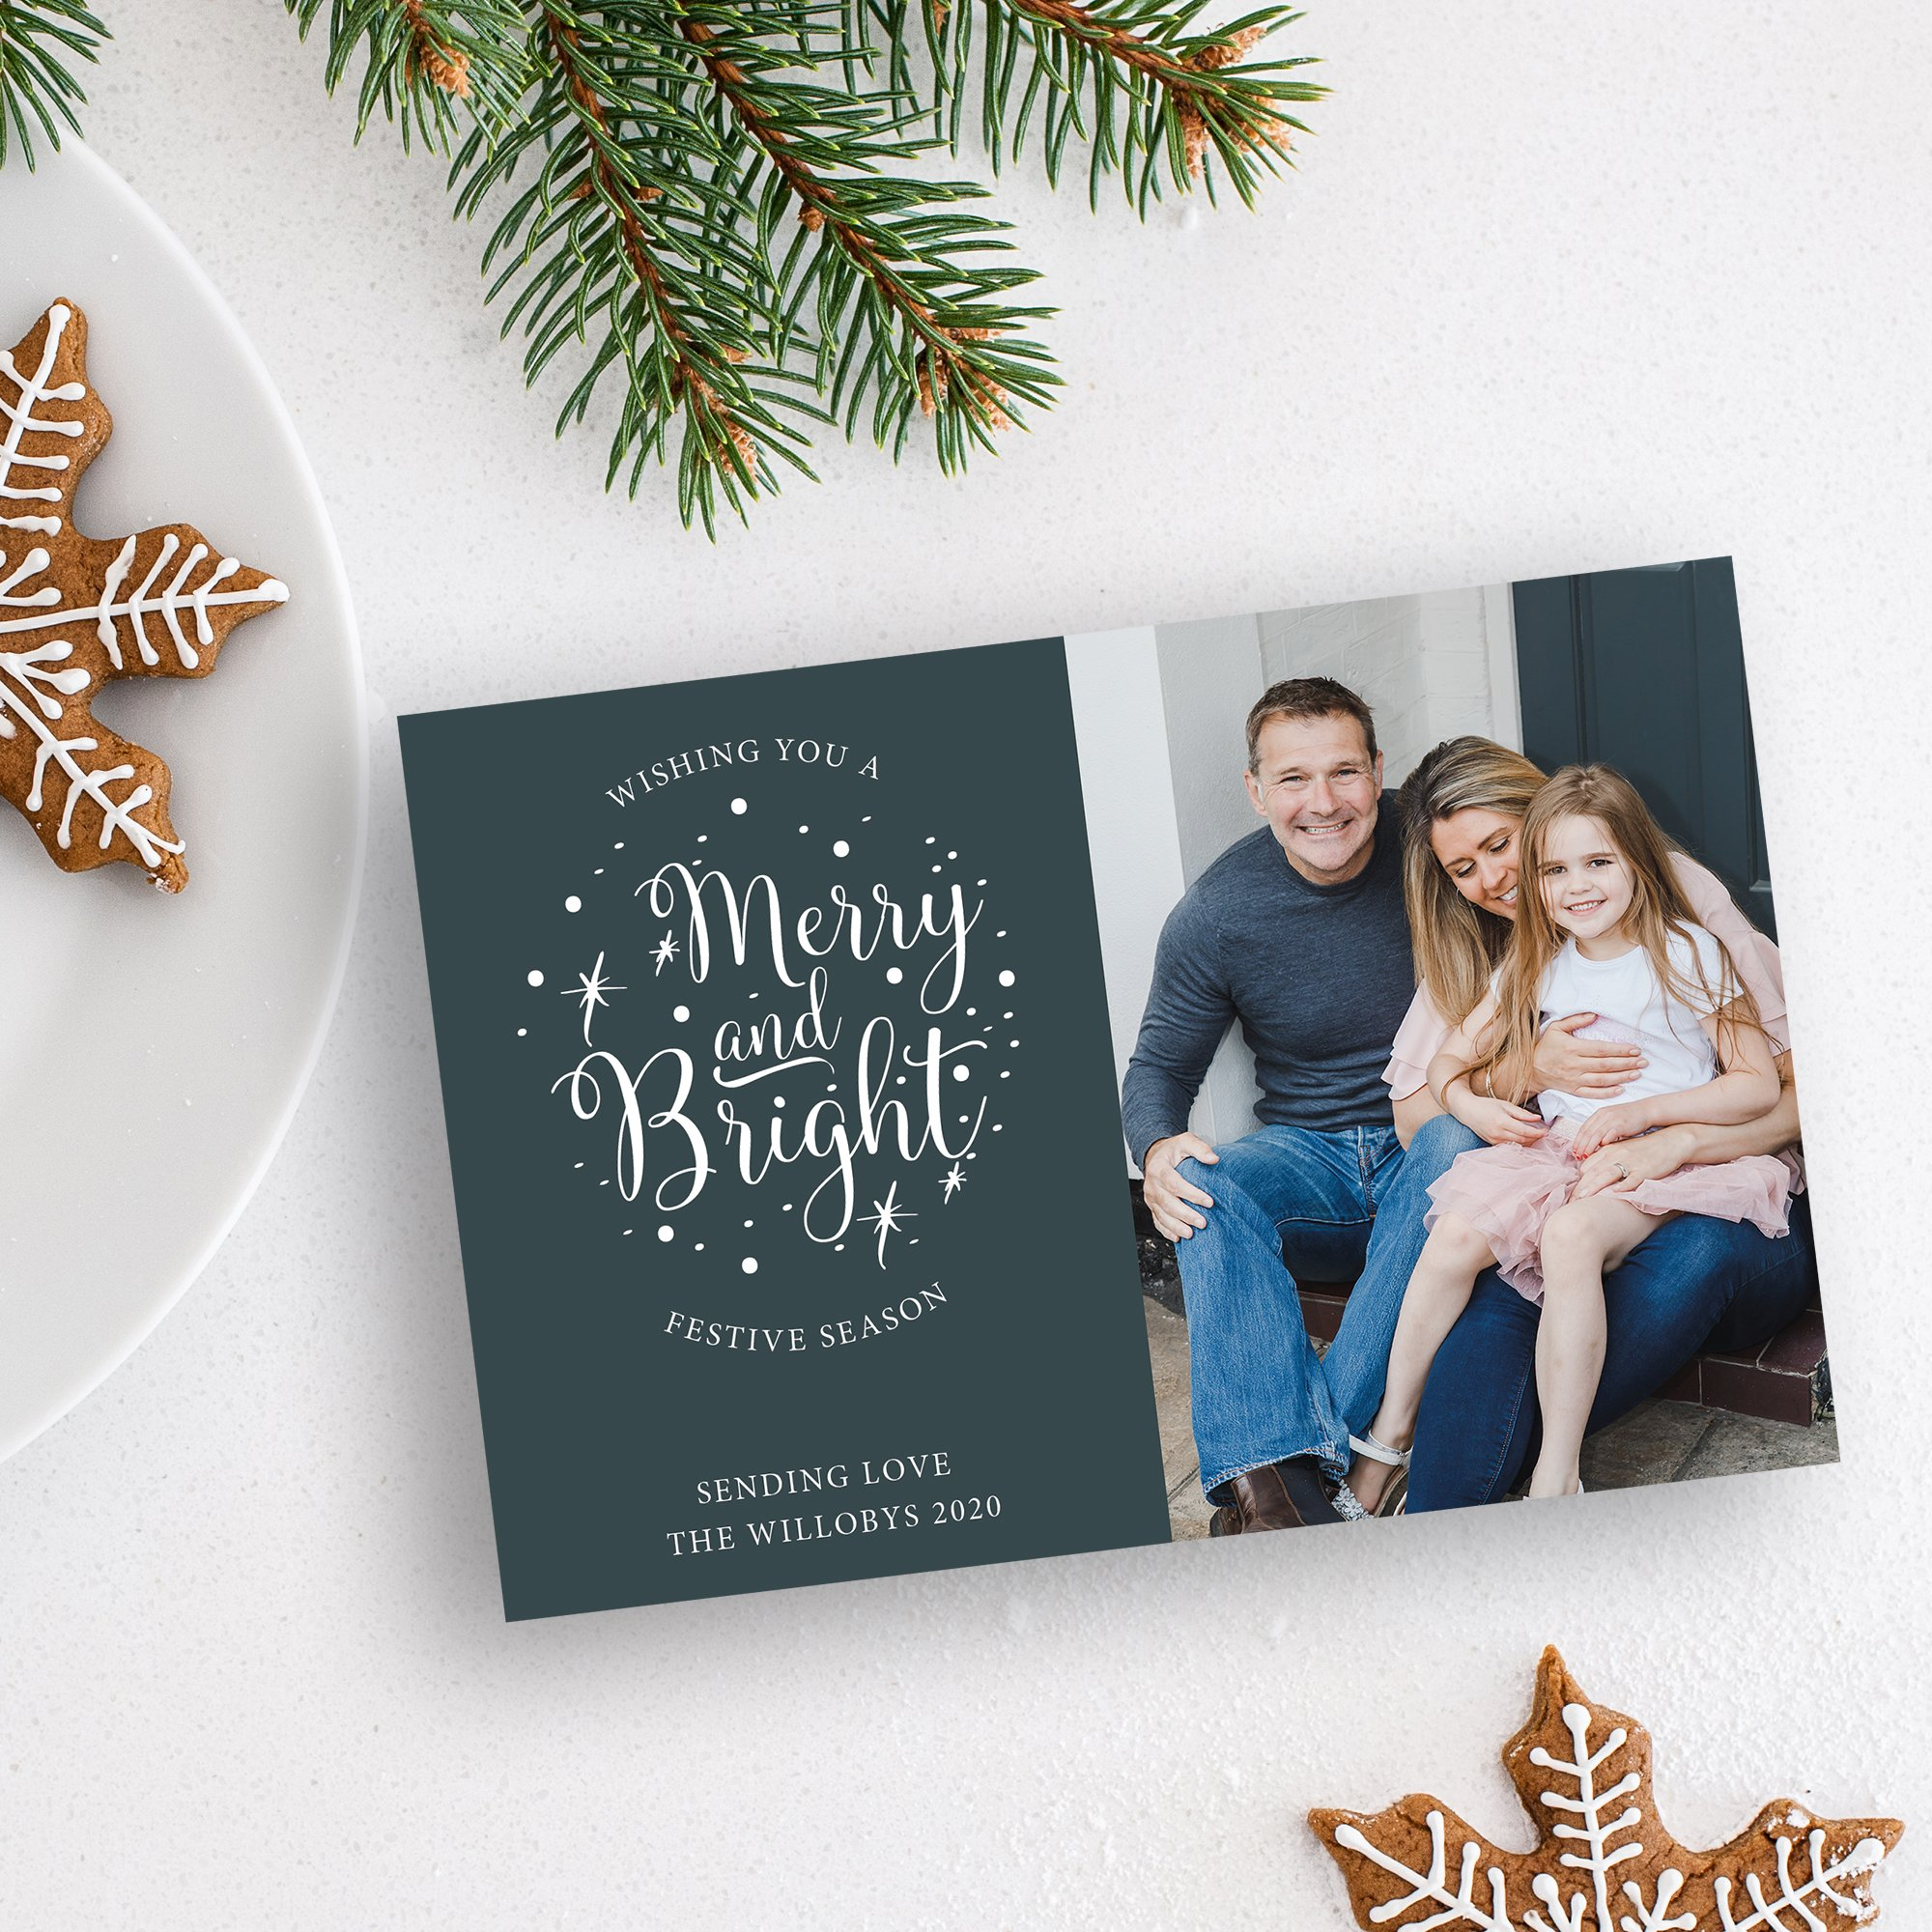 Doorstep Photo Christmas Cards by Flamboyant Invites